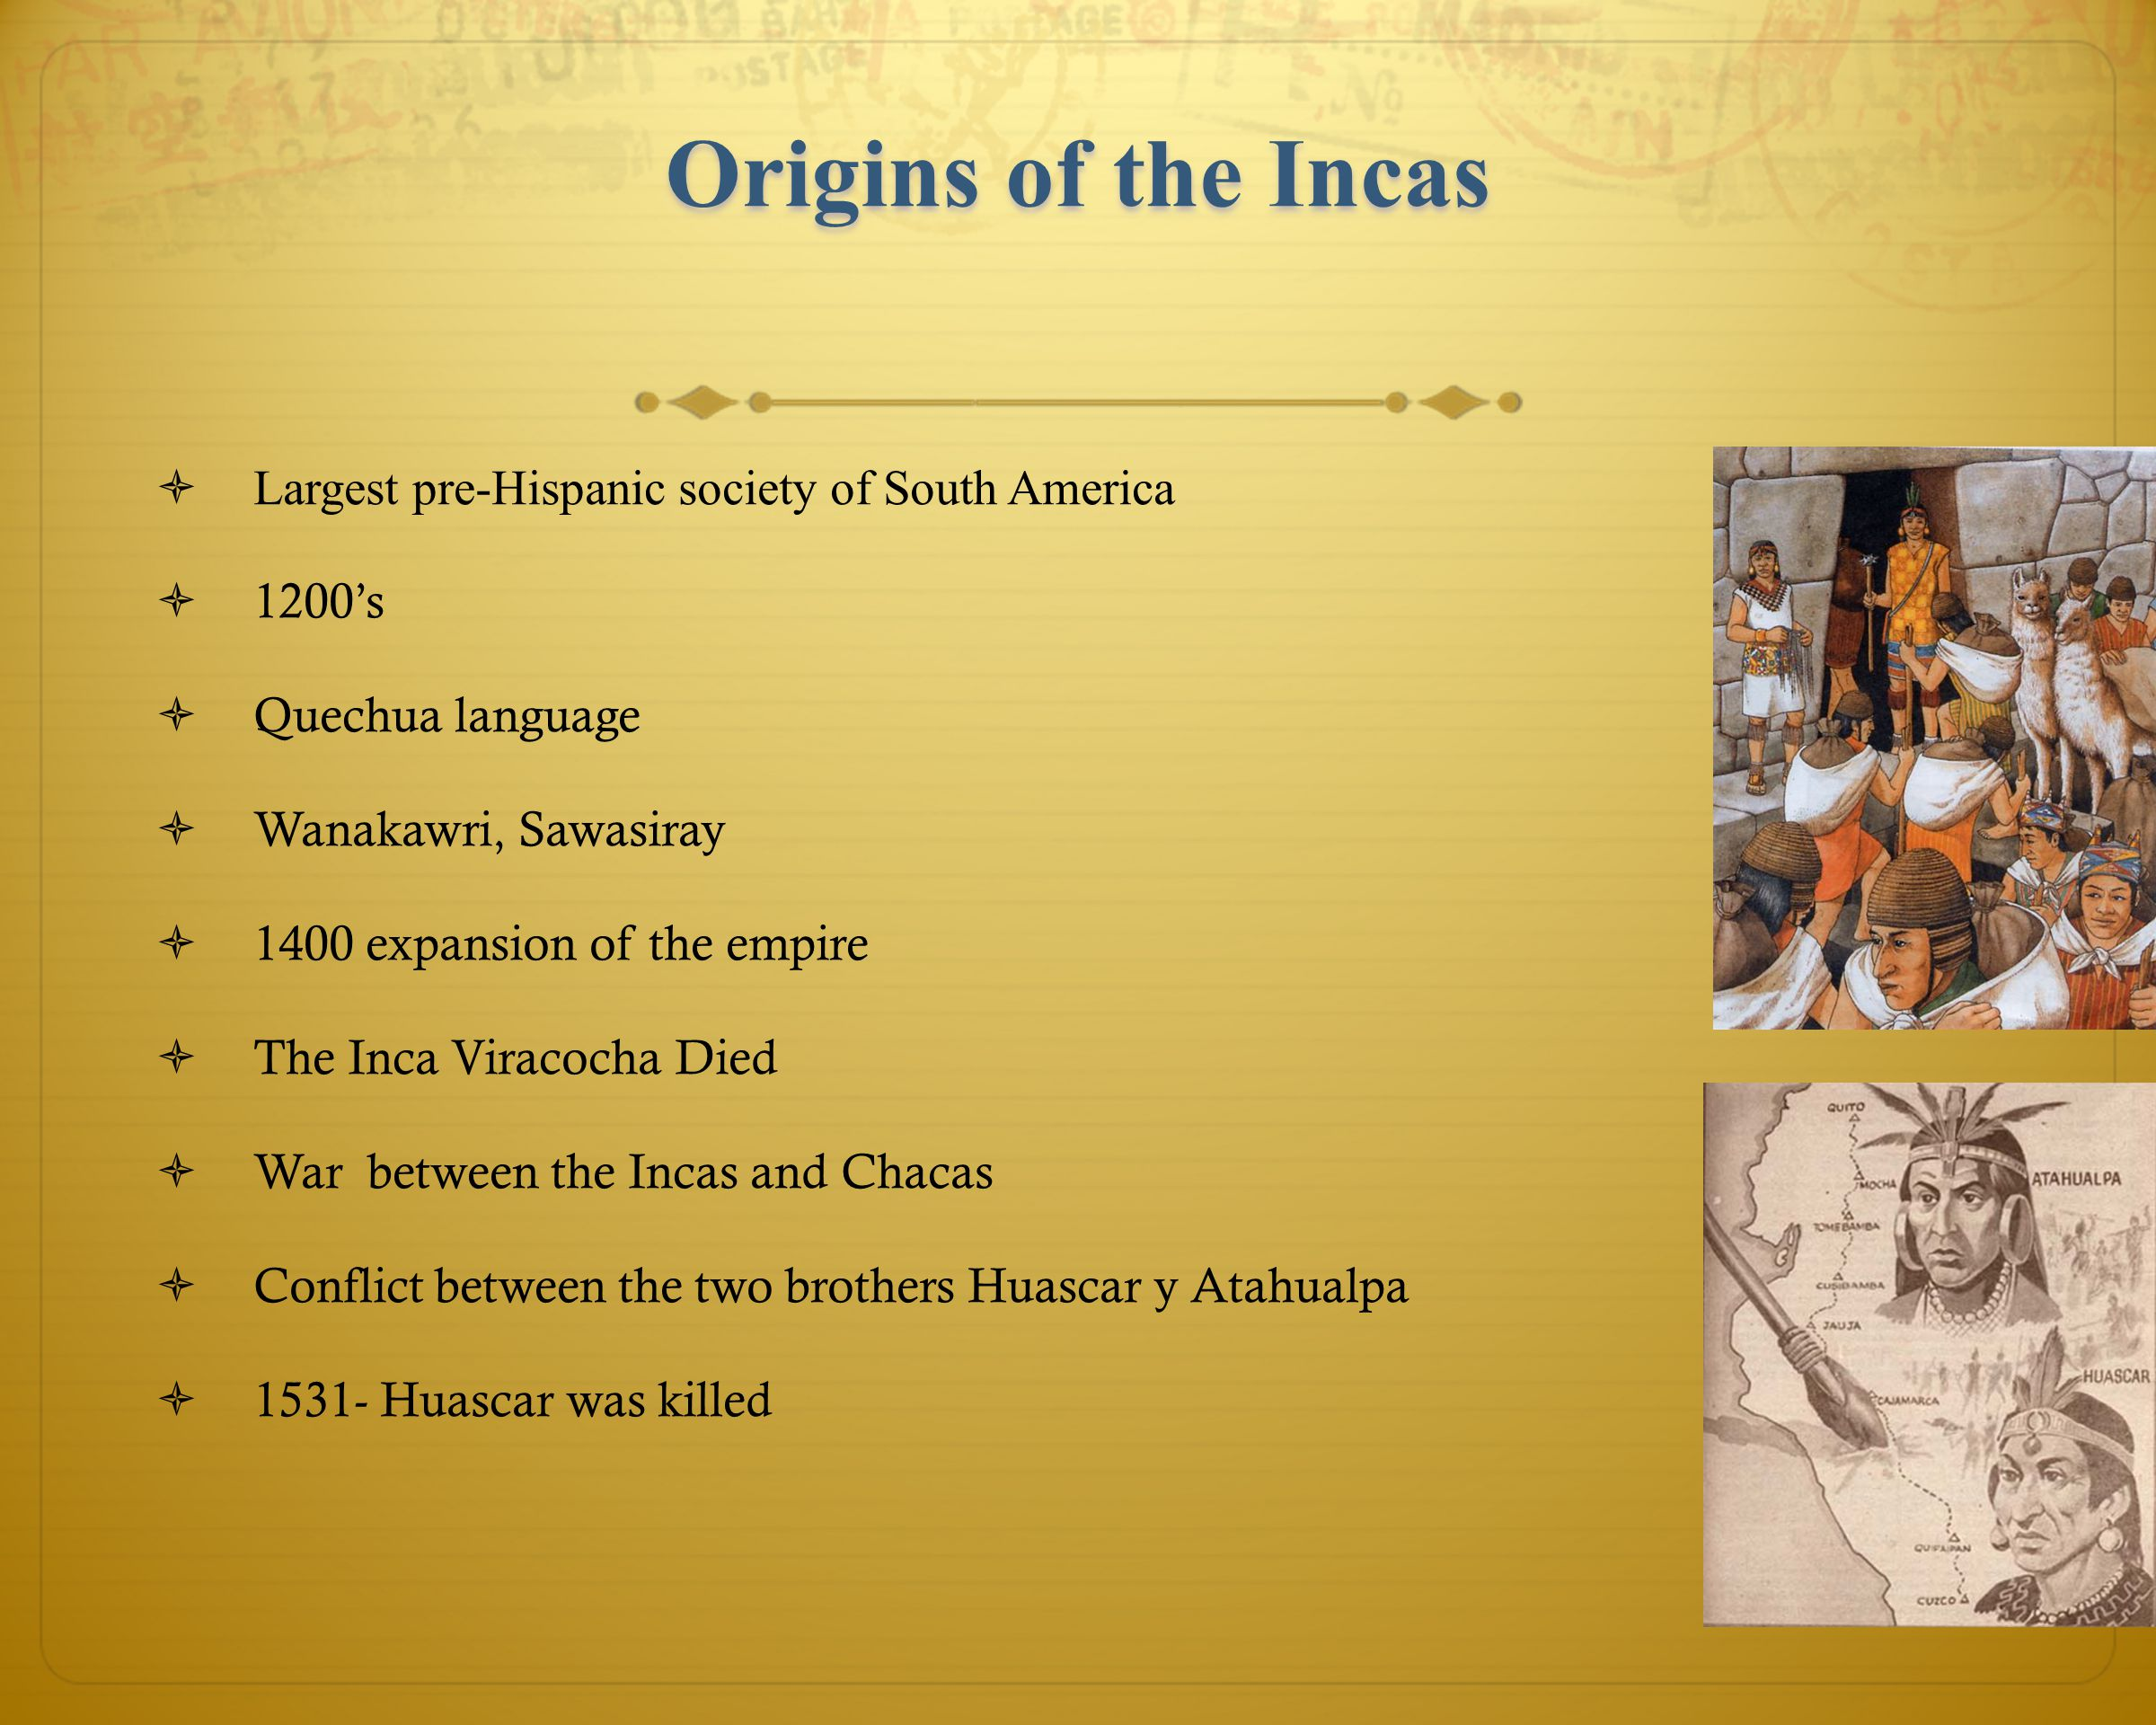 Origins of the Incas  Largest pre-Hispanic society of South America  1200's  Quechua language  Wanakawri, Sawasiray  1400 expansion of the empire  The Inca Viracocha Died  War between the Incas and Chacas  Conflict between the two brothers Huascar y Atahualpa  1531- Huascar was killed